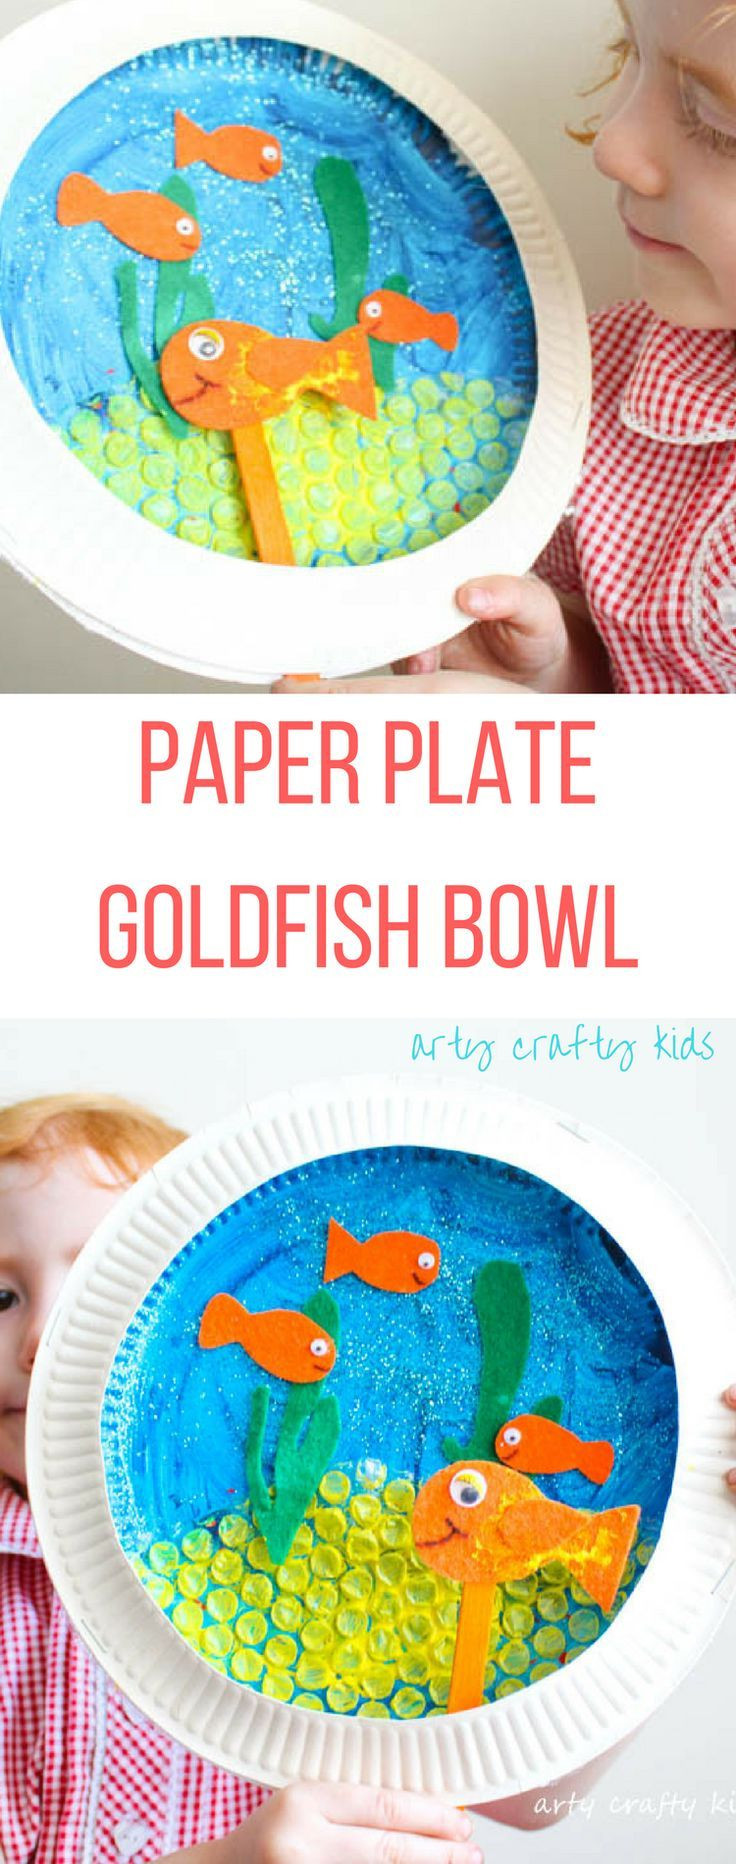 goldfish vase of paper plate goldfish bowl craft crafts pinterest goldfish bowl in paper plate goldfish bowl craft arty crafty kids